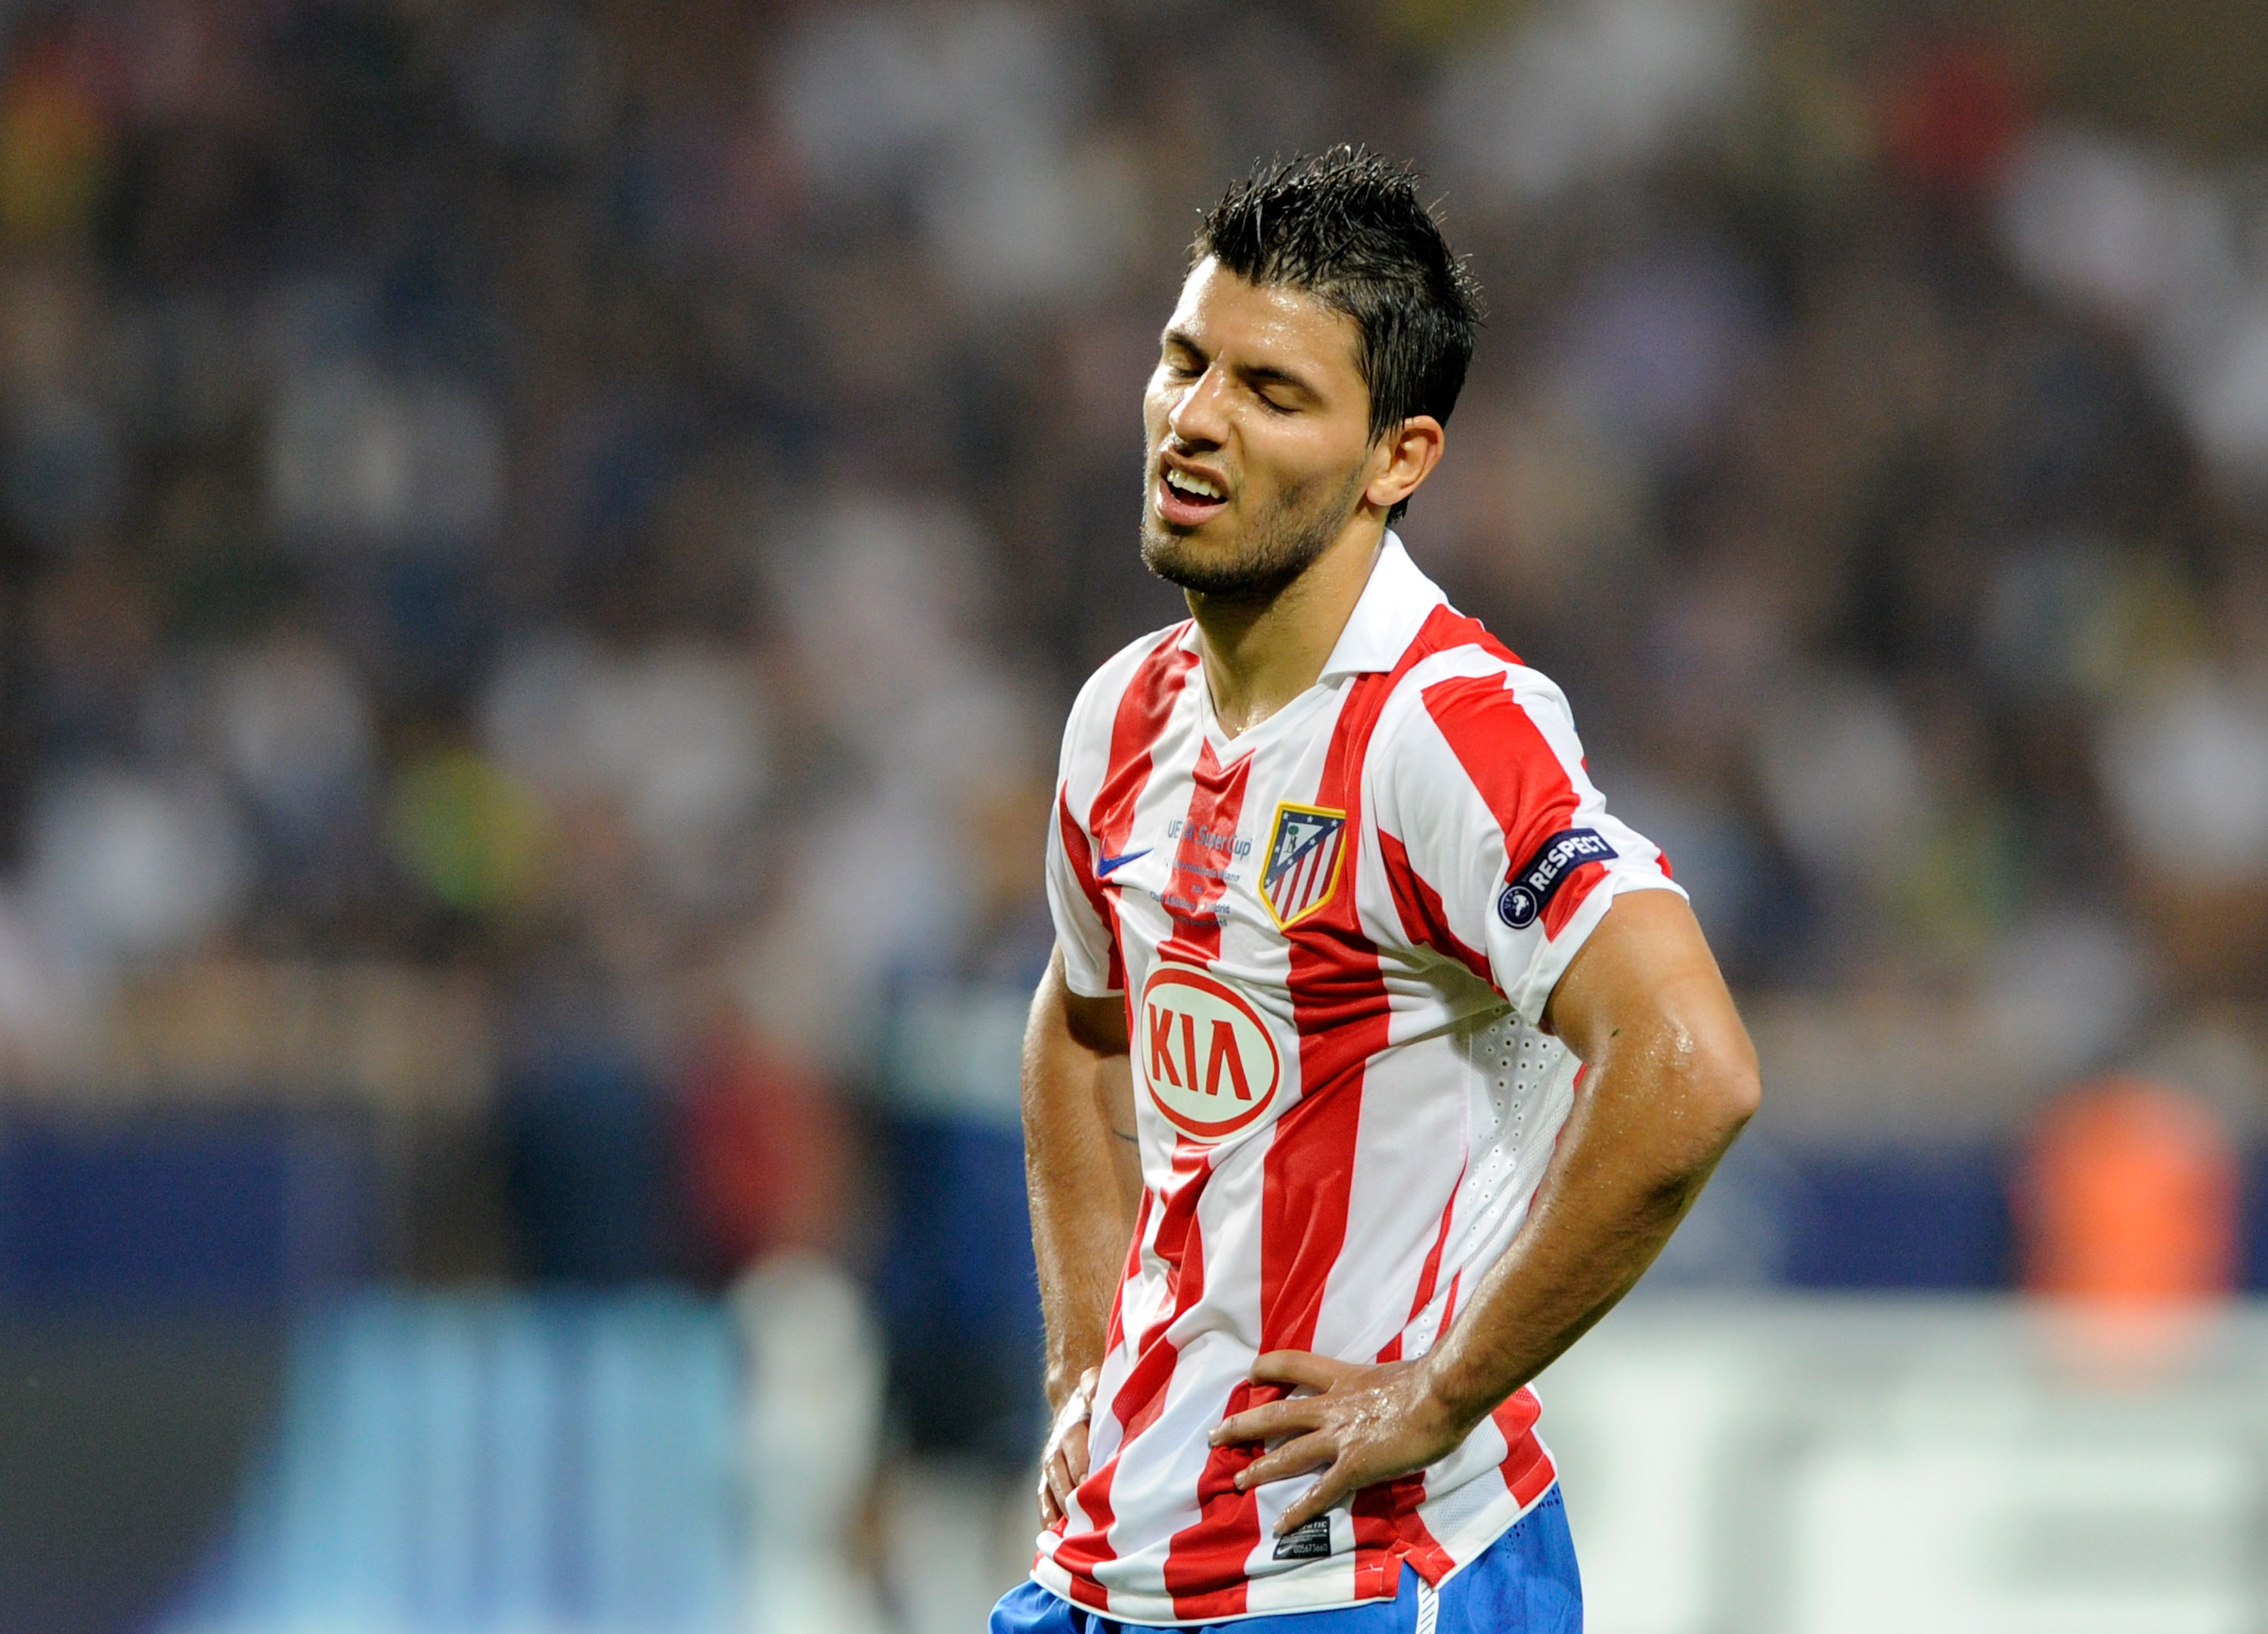 MONACO - AUGUST 27:  Sergio Aguero of Atletico Madrid dejected during the UEFA Super Cup between Inter and Atletico Madrid at Louis II Stadium on August 27, 2010 in Monaco, Monaco.  (Photo by Claudio Villa/Getty Images)